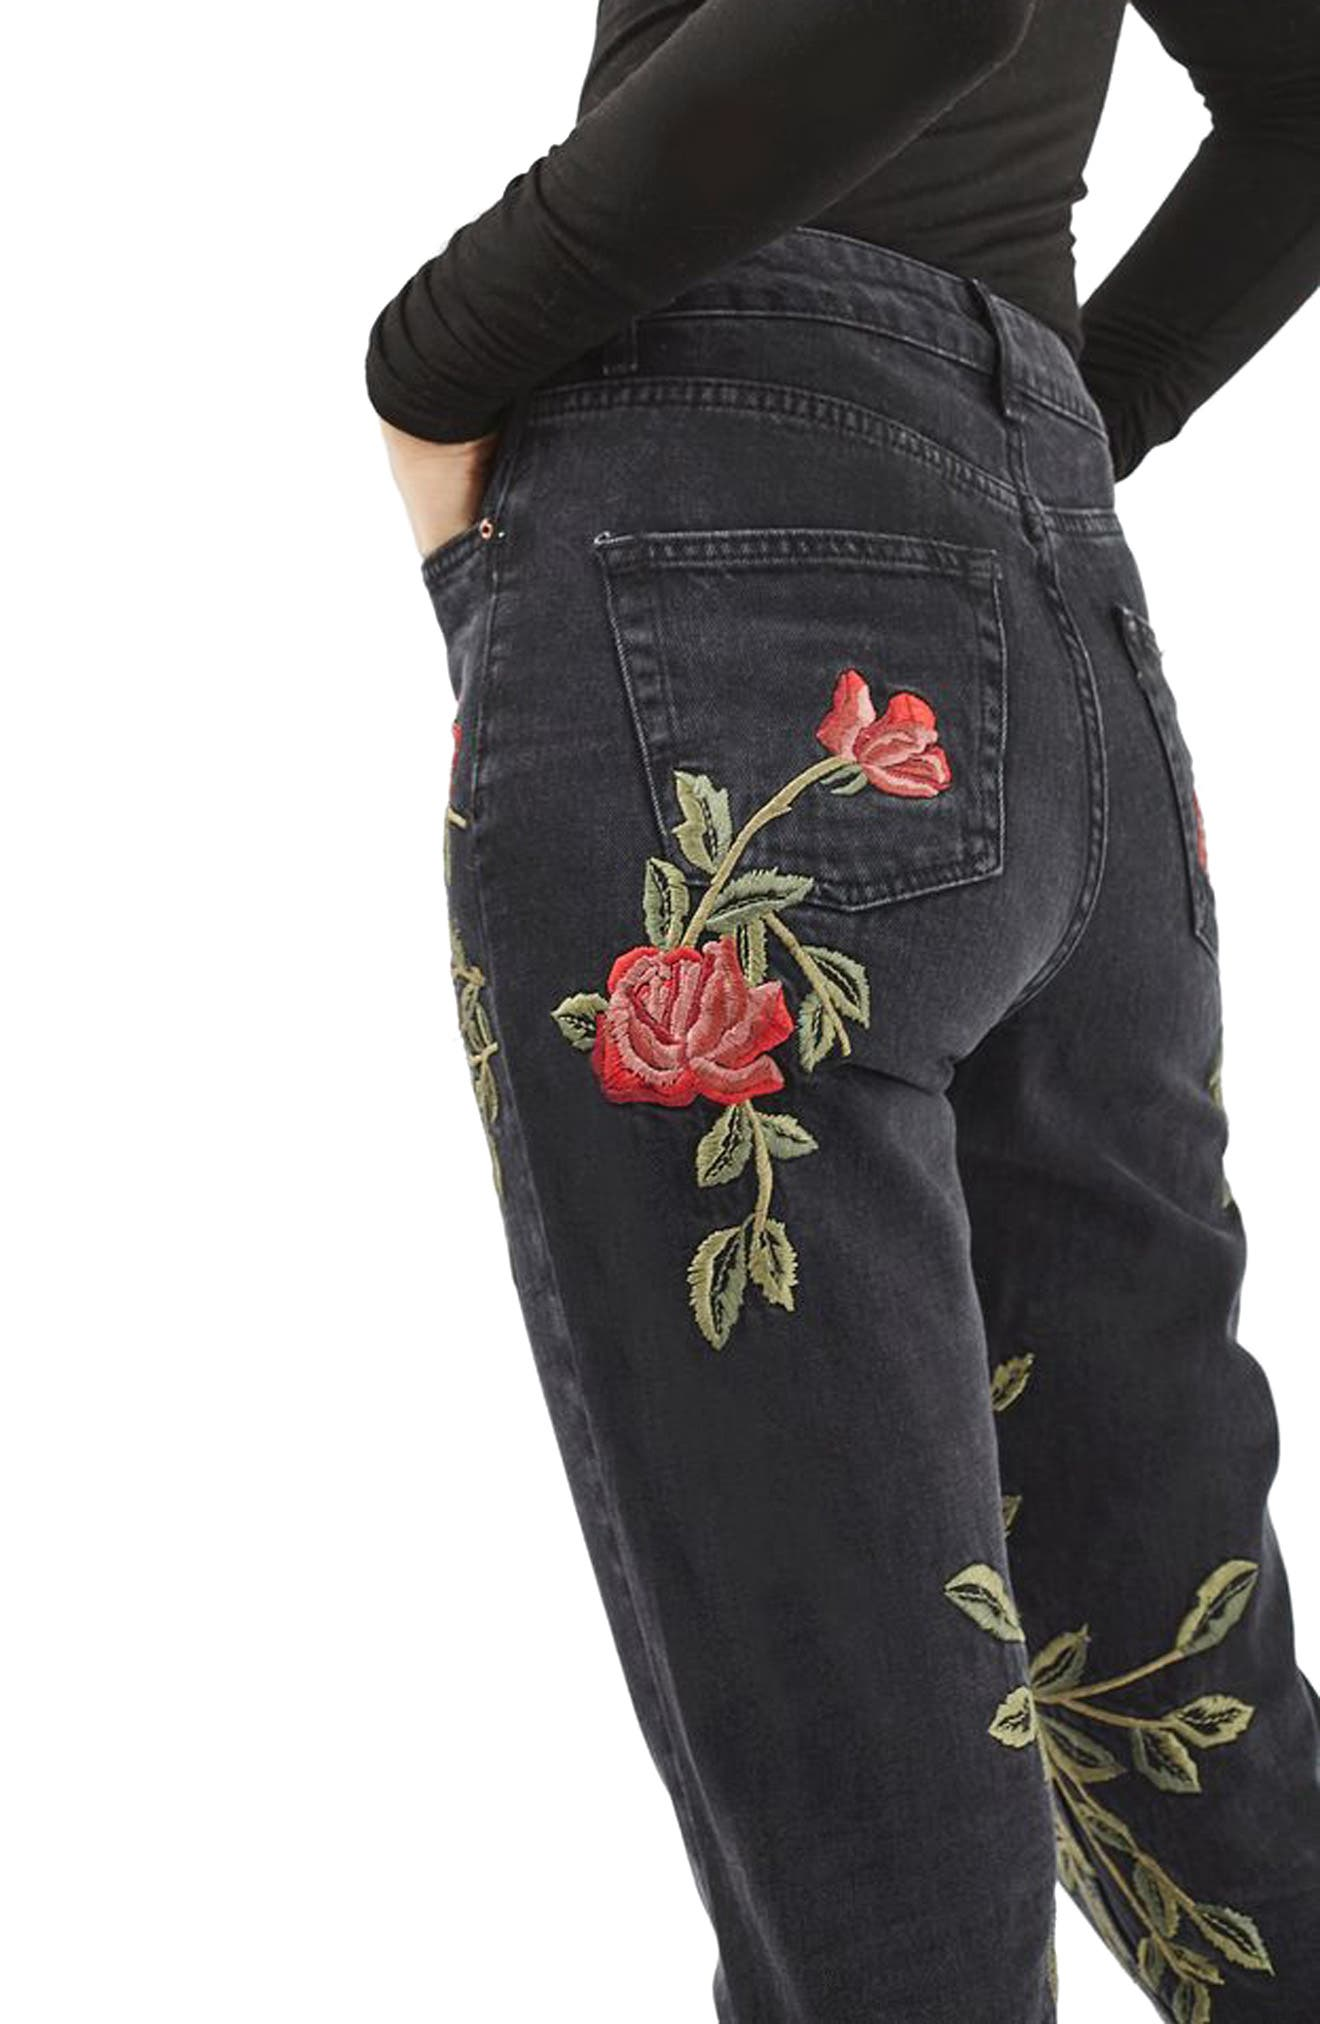 Mom Rose Embroidered Jeans,                             Alternate thumbnail 2, color,                             001